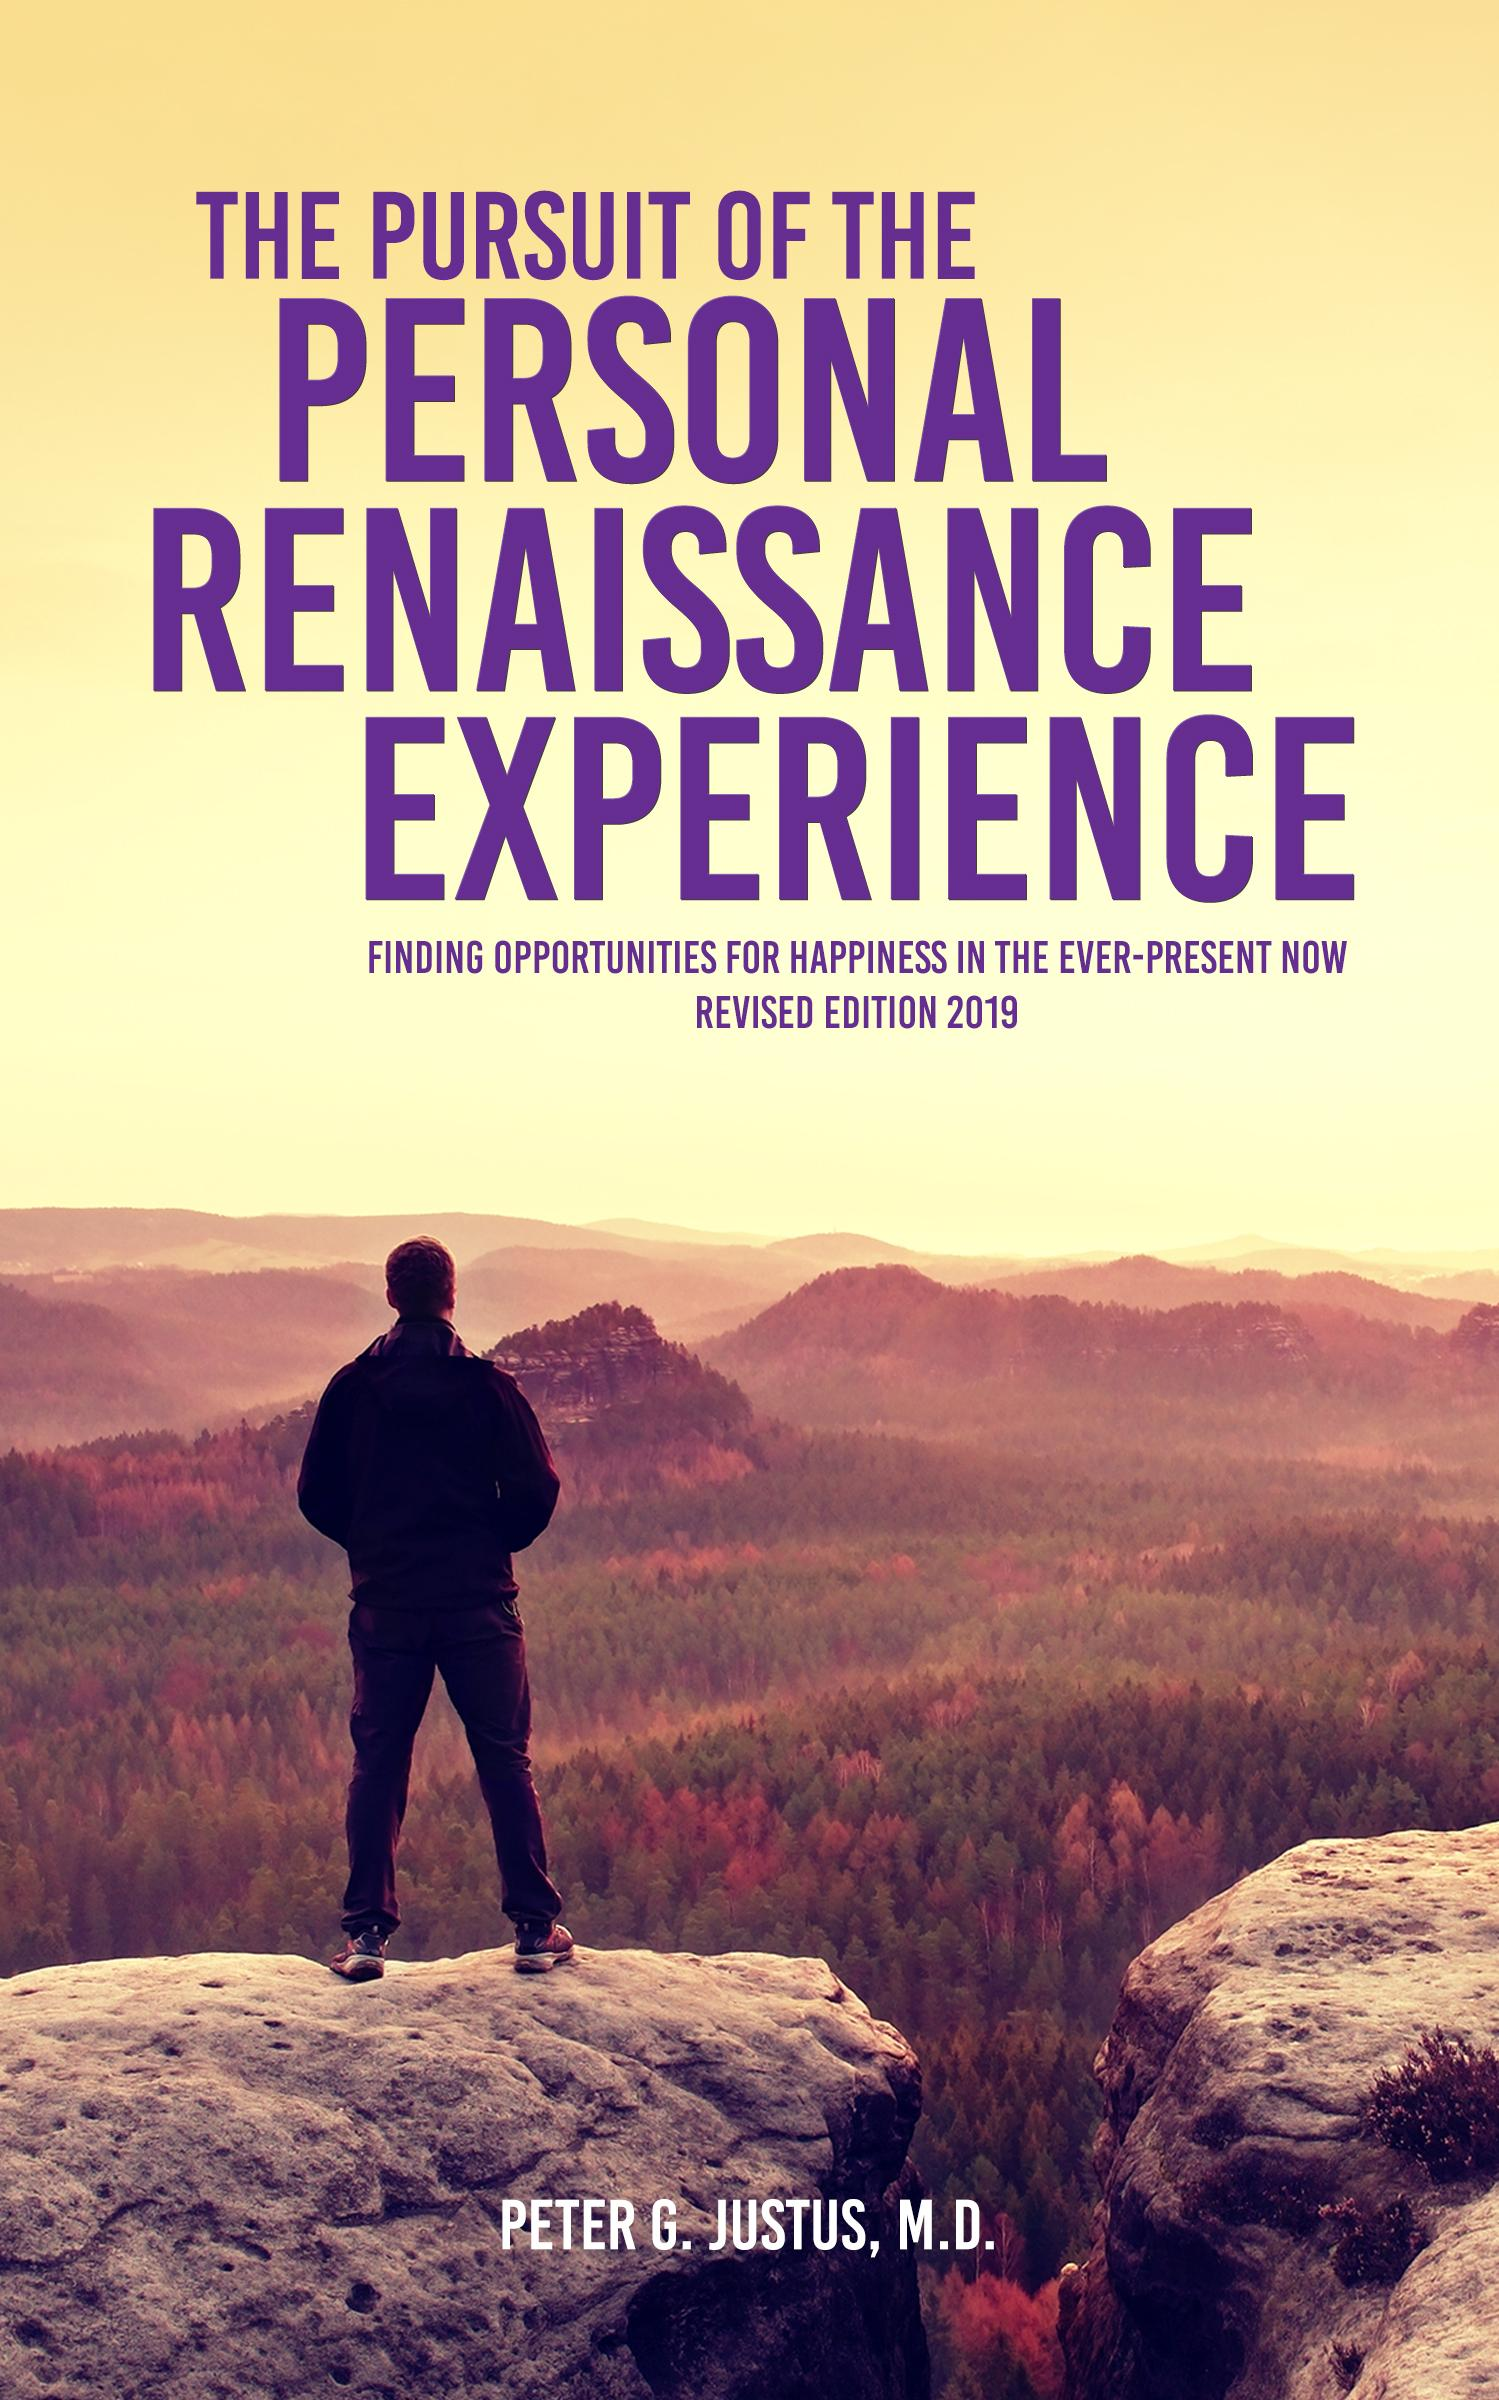 THE PURSUIT OF THE PERSONAL RENAISSANCE EXPERIENCE